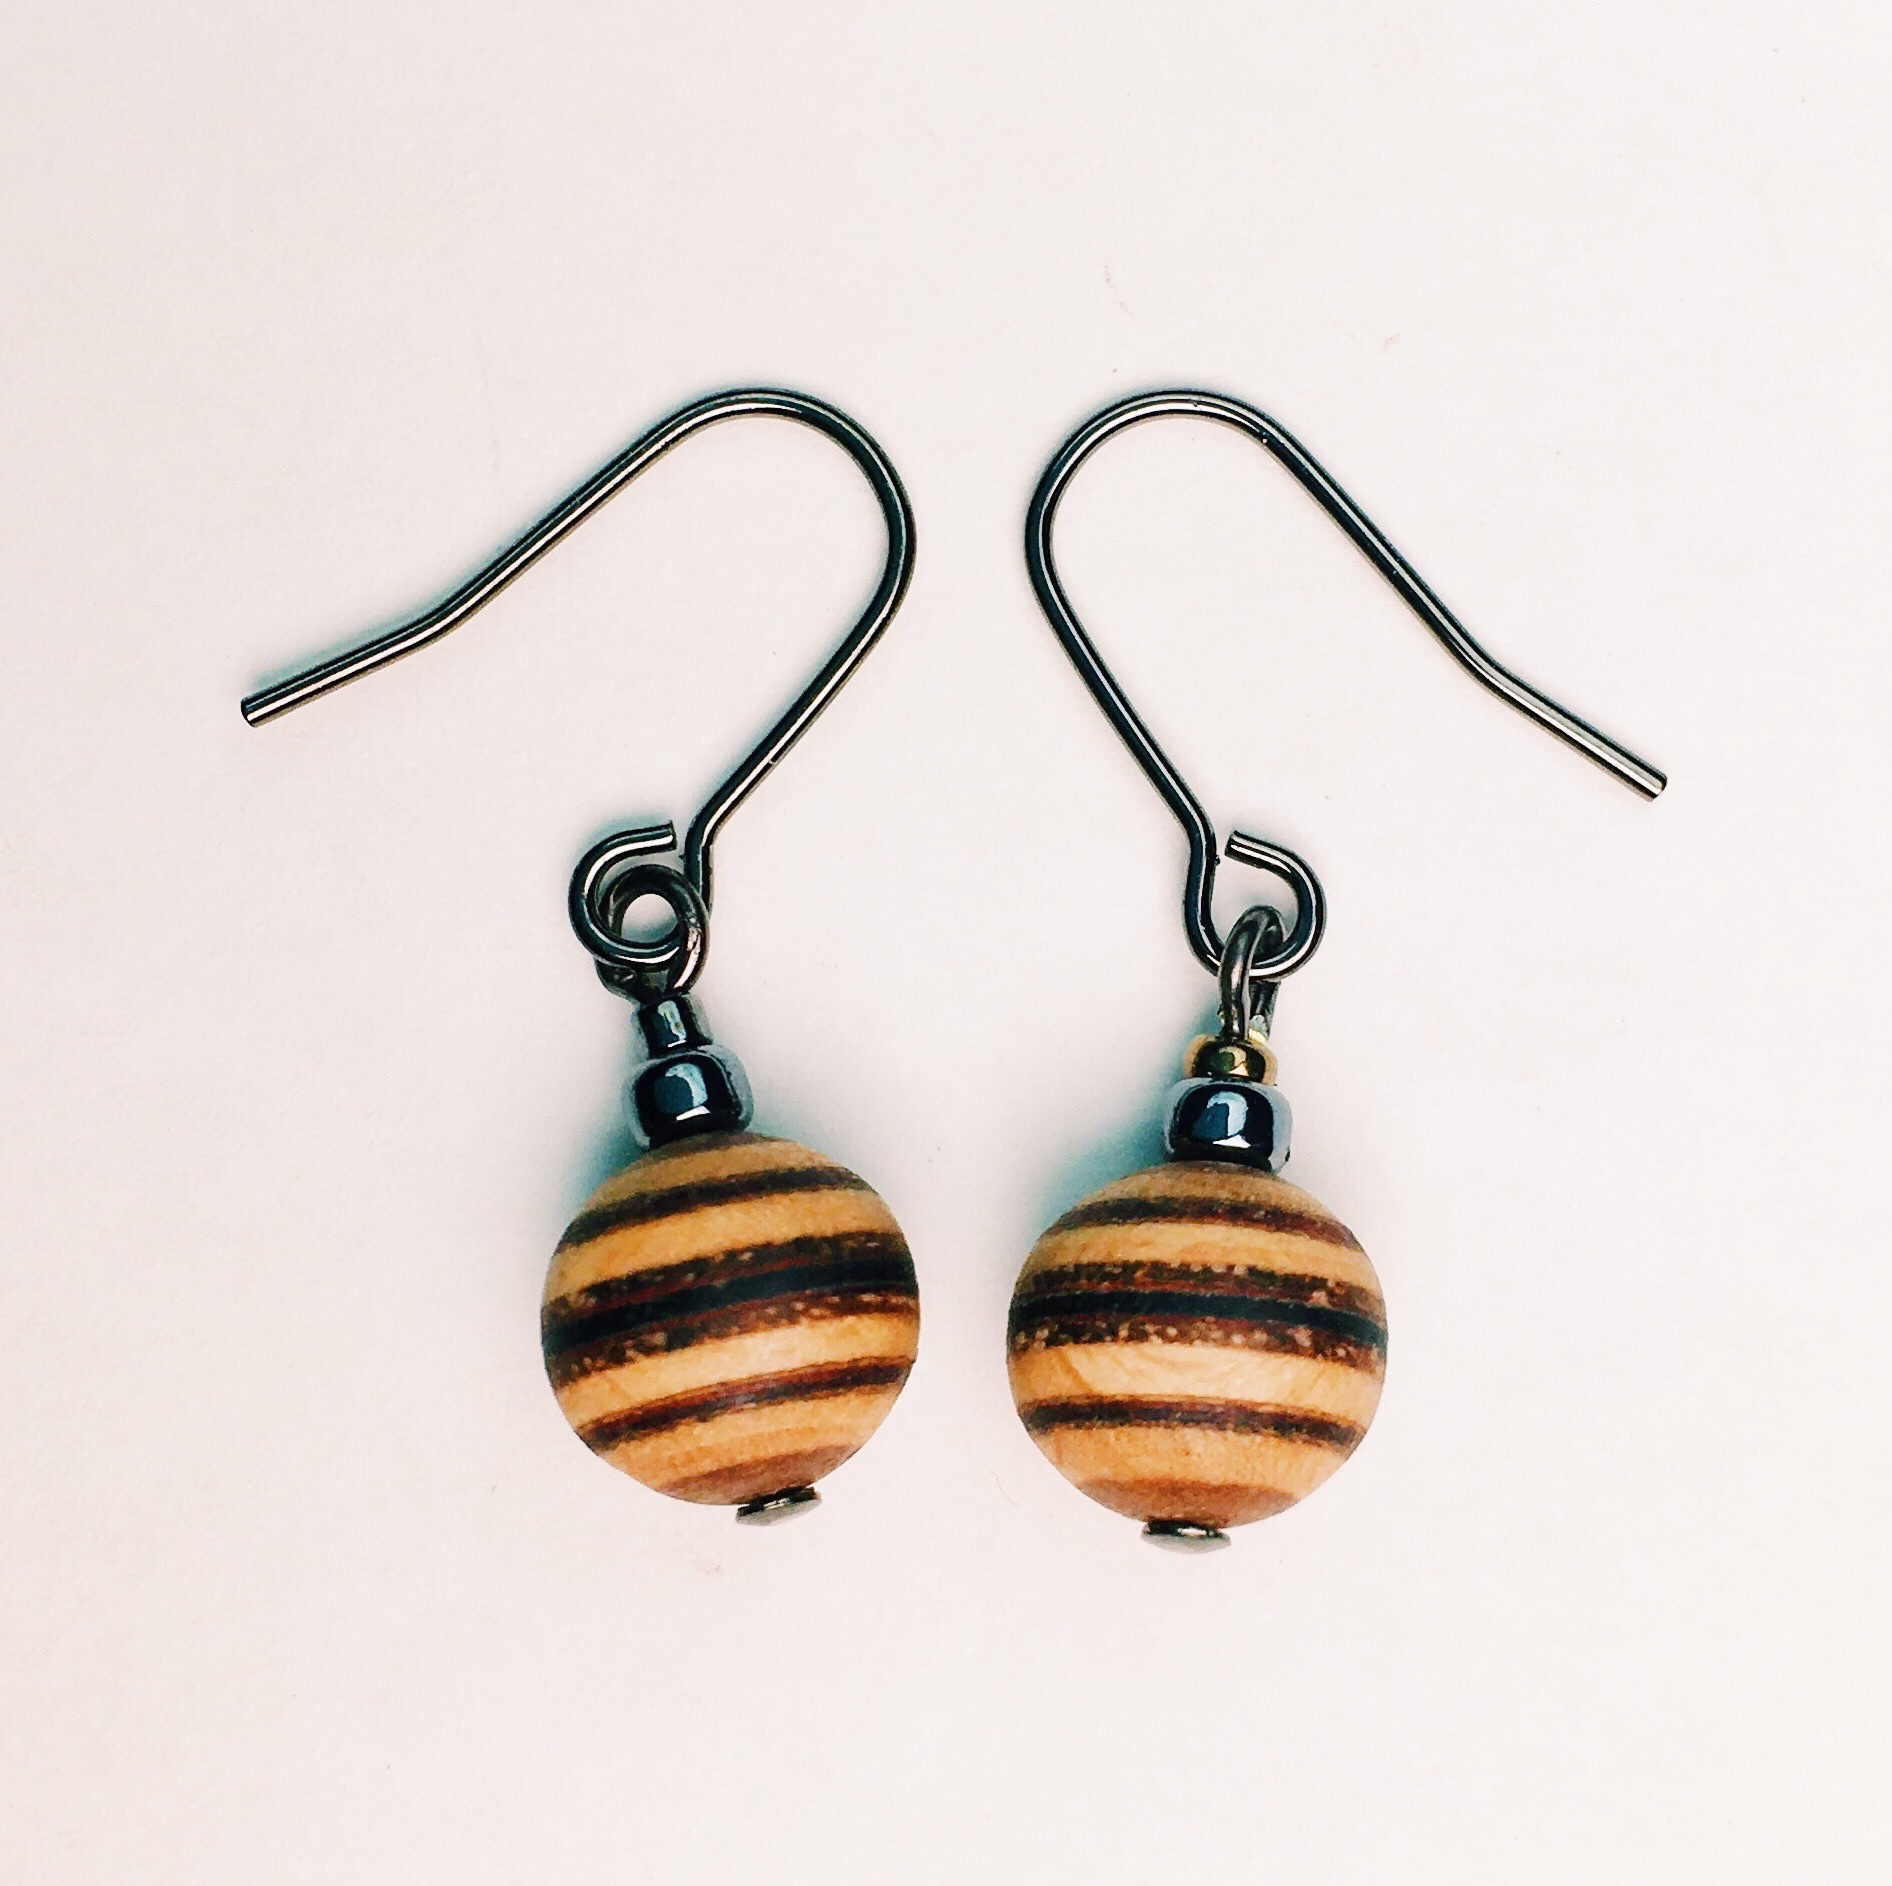 wood ball beads pierce